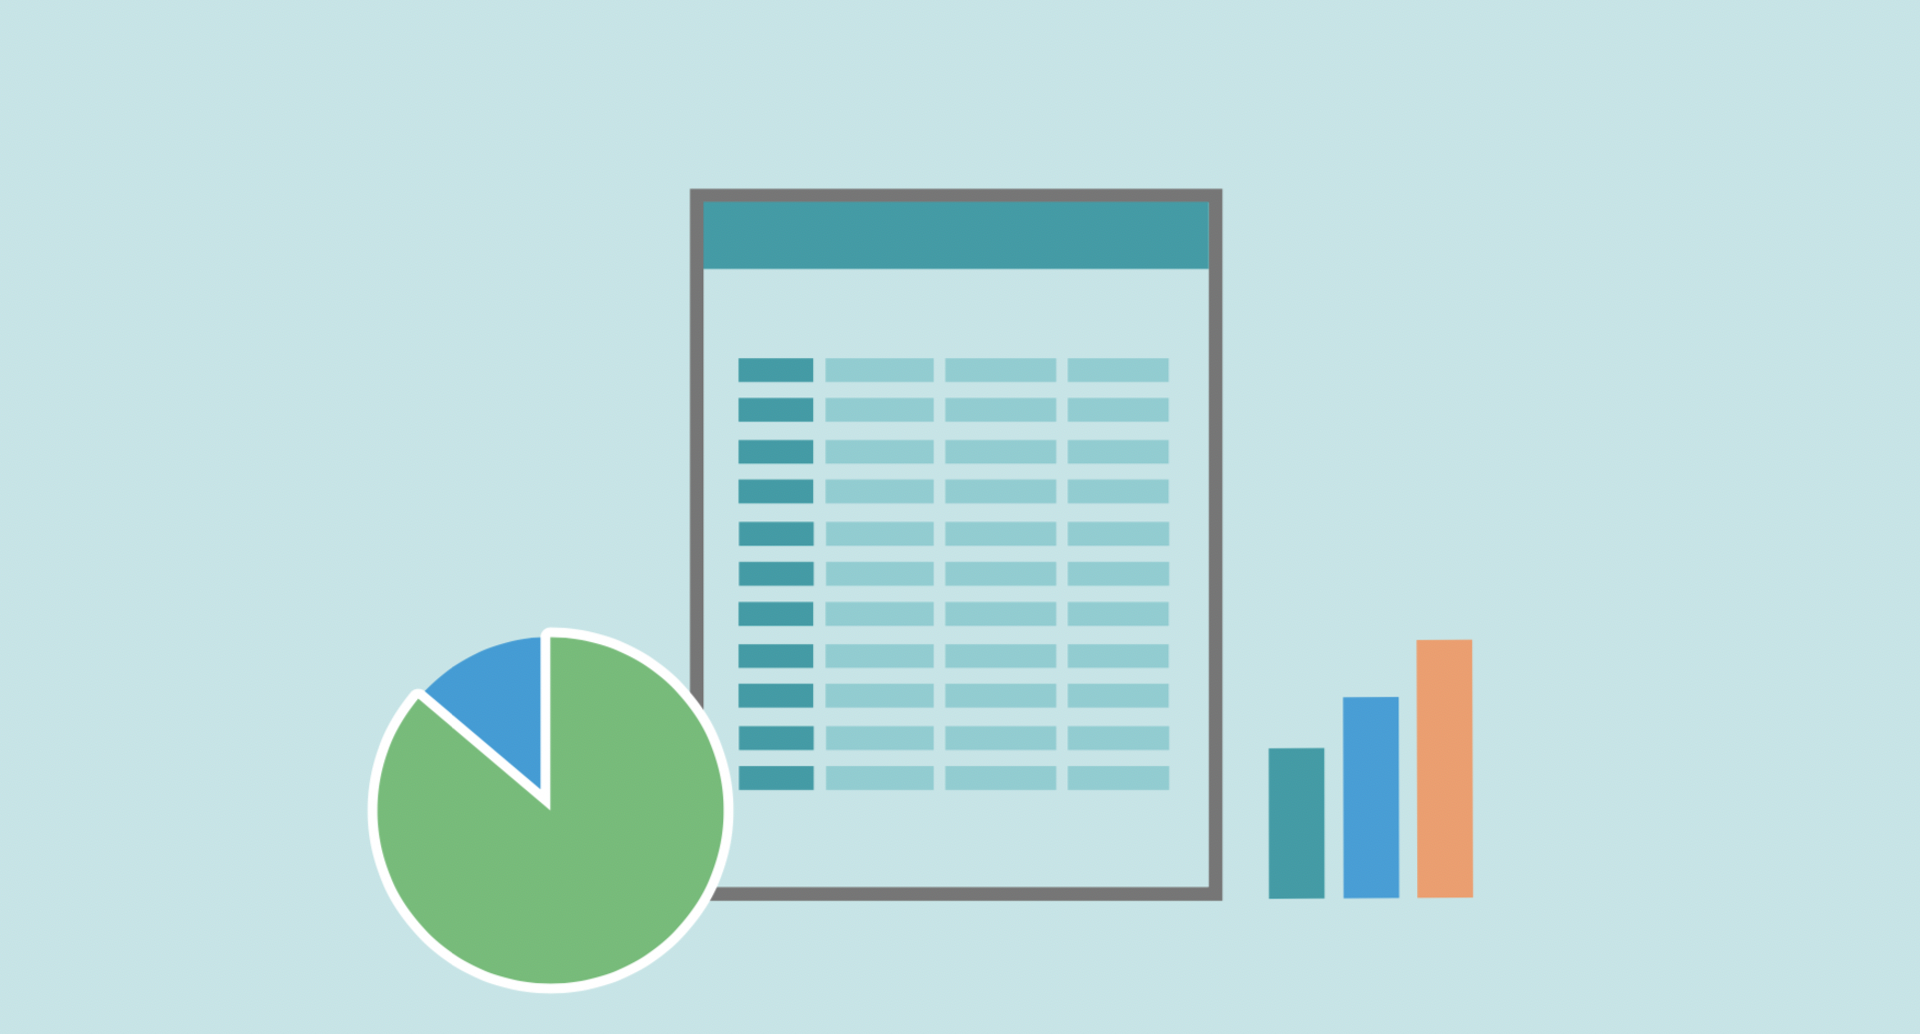 spreadsheets and bar graphs on a teal background